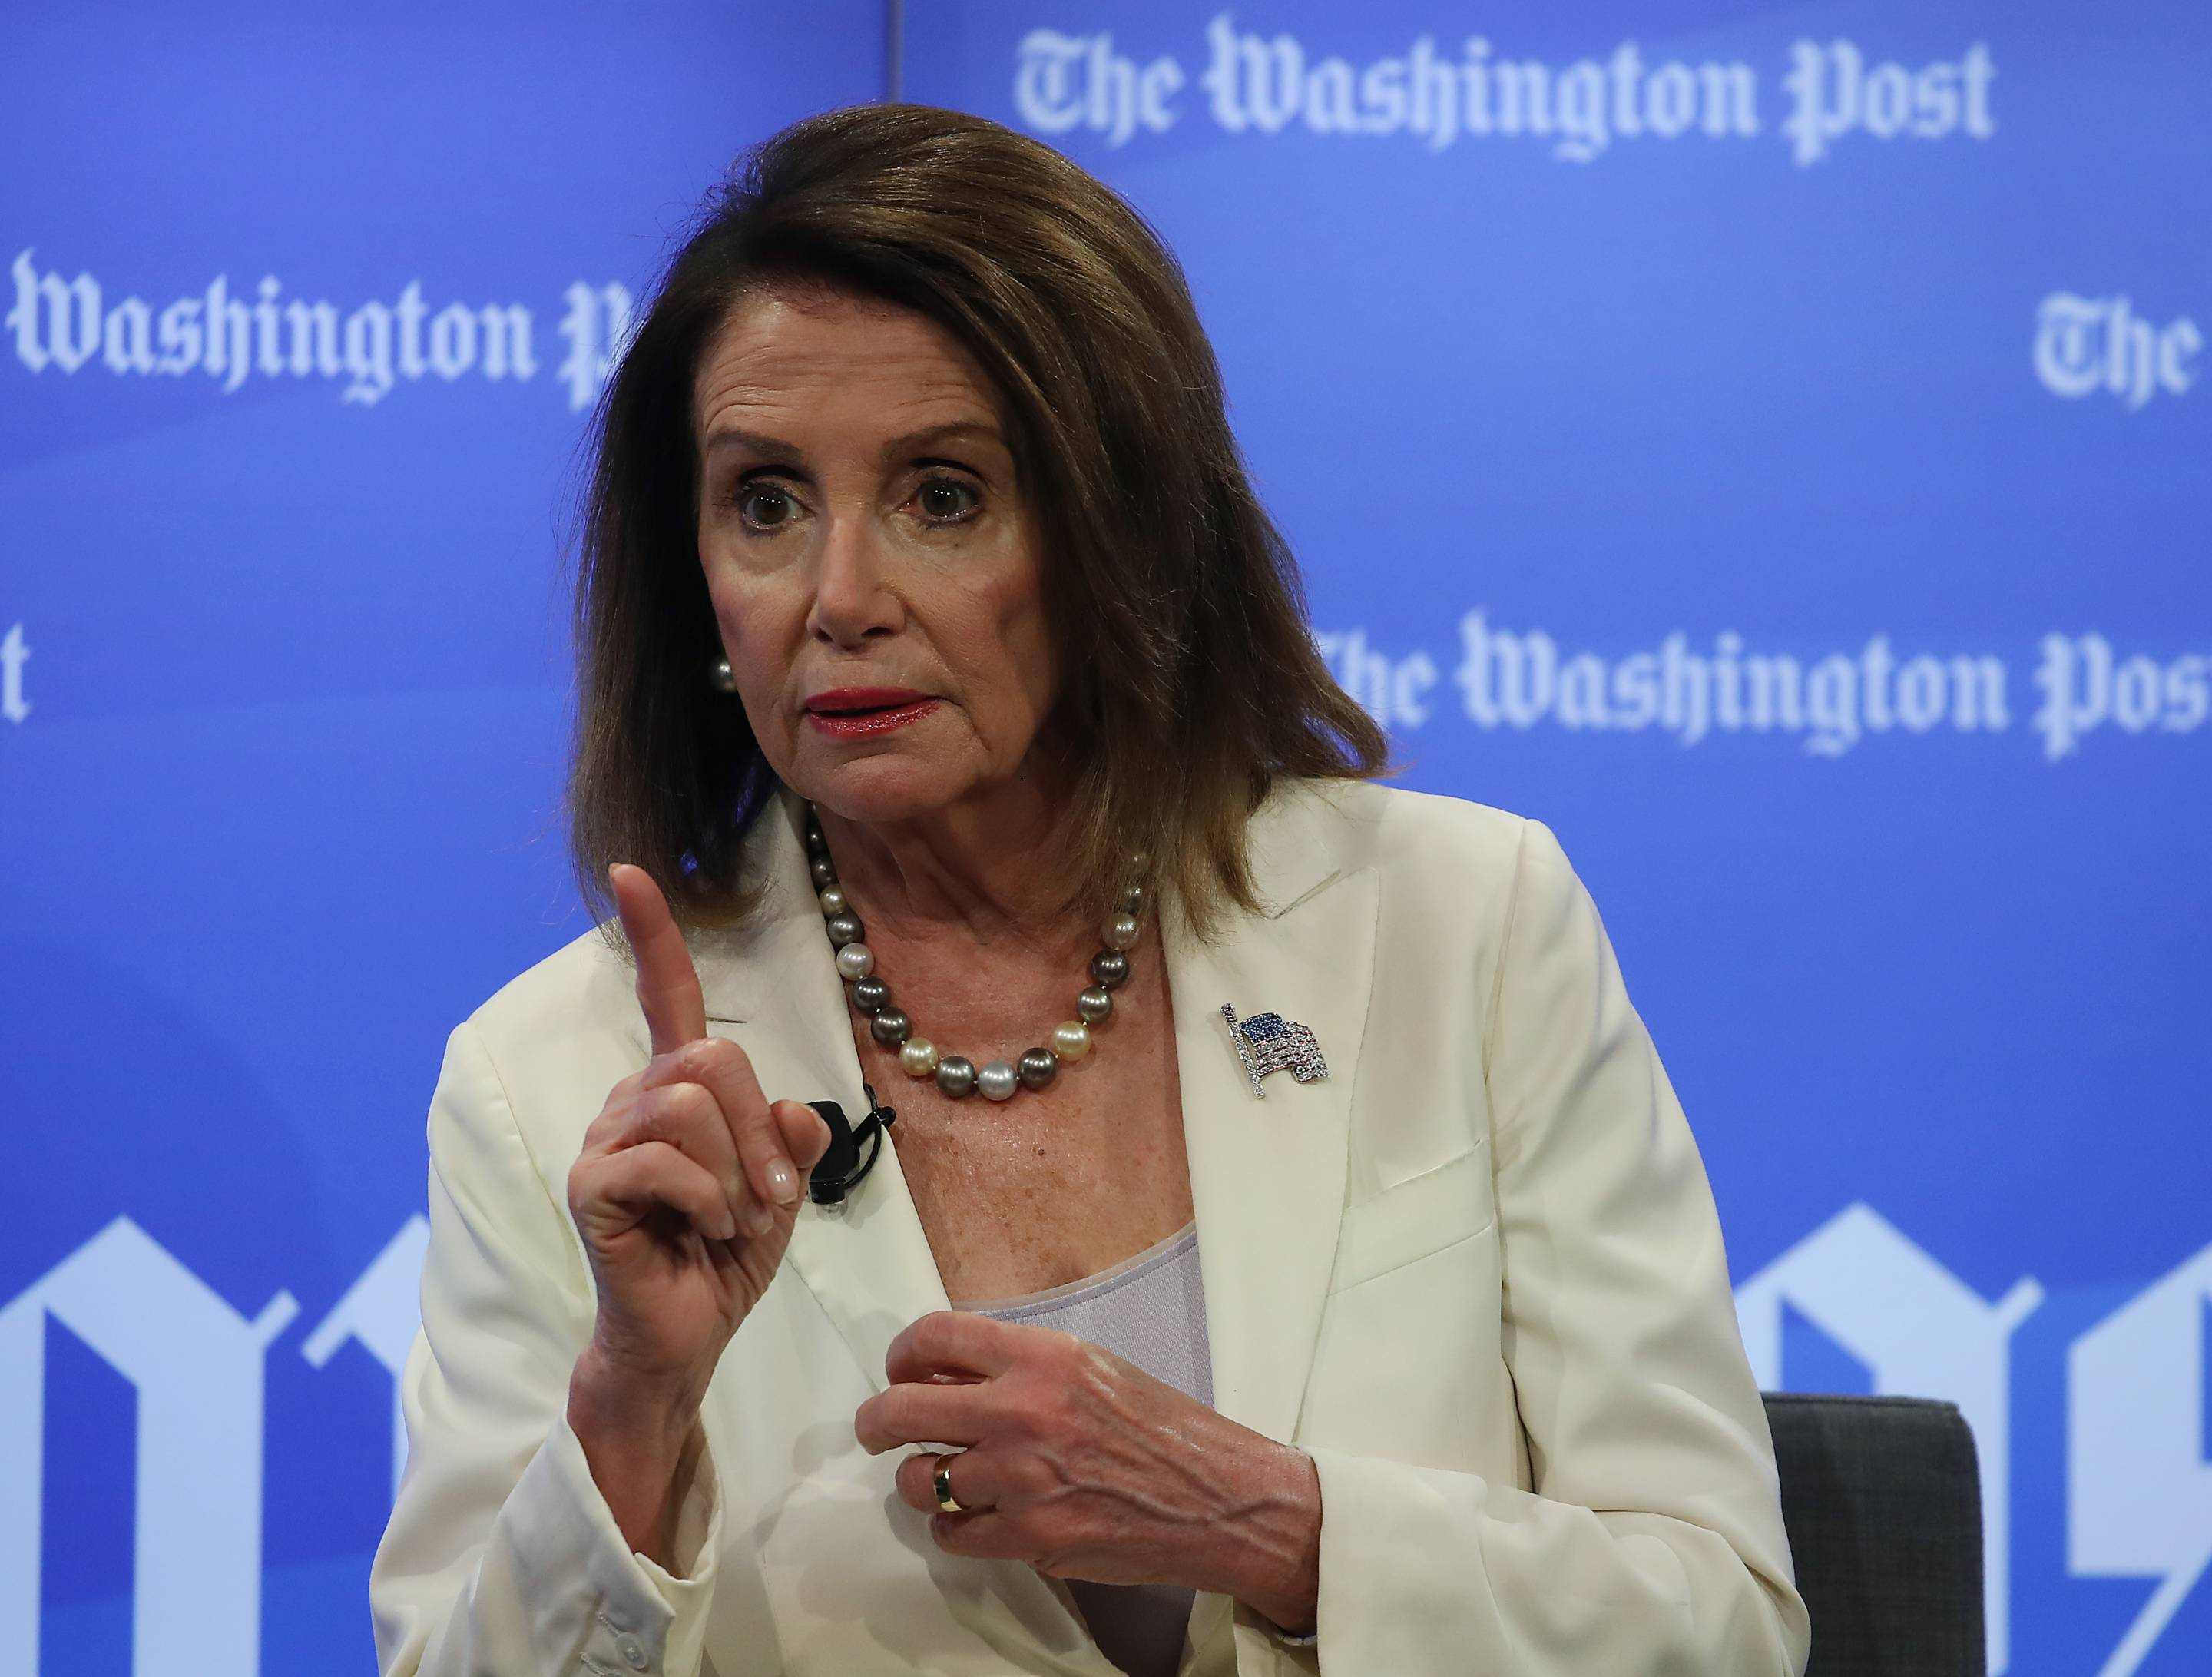 Speaker Nancy Pelosi Participates In A Moderated Conversation At Washington Post